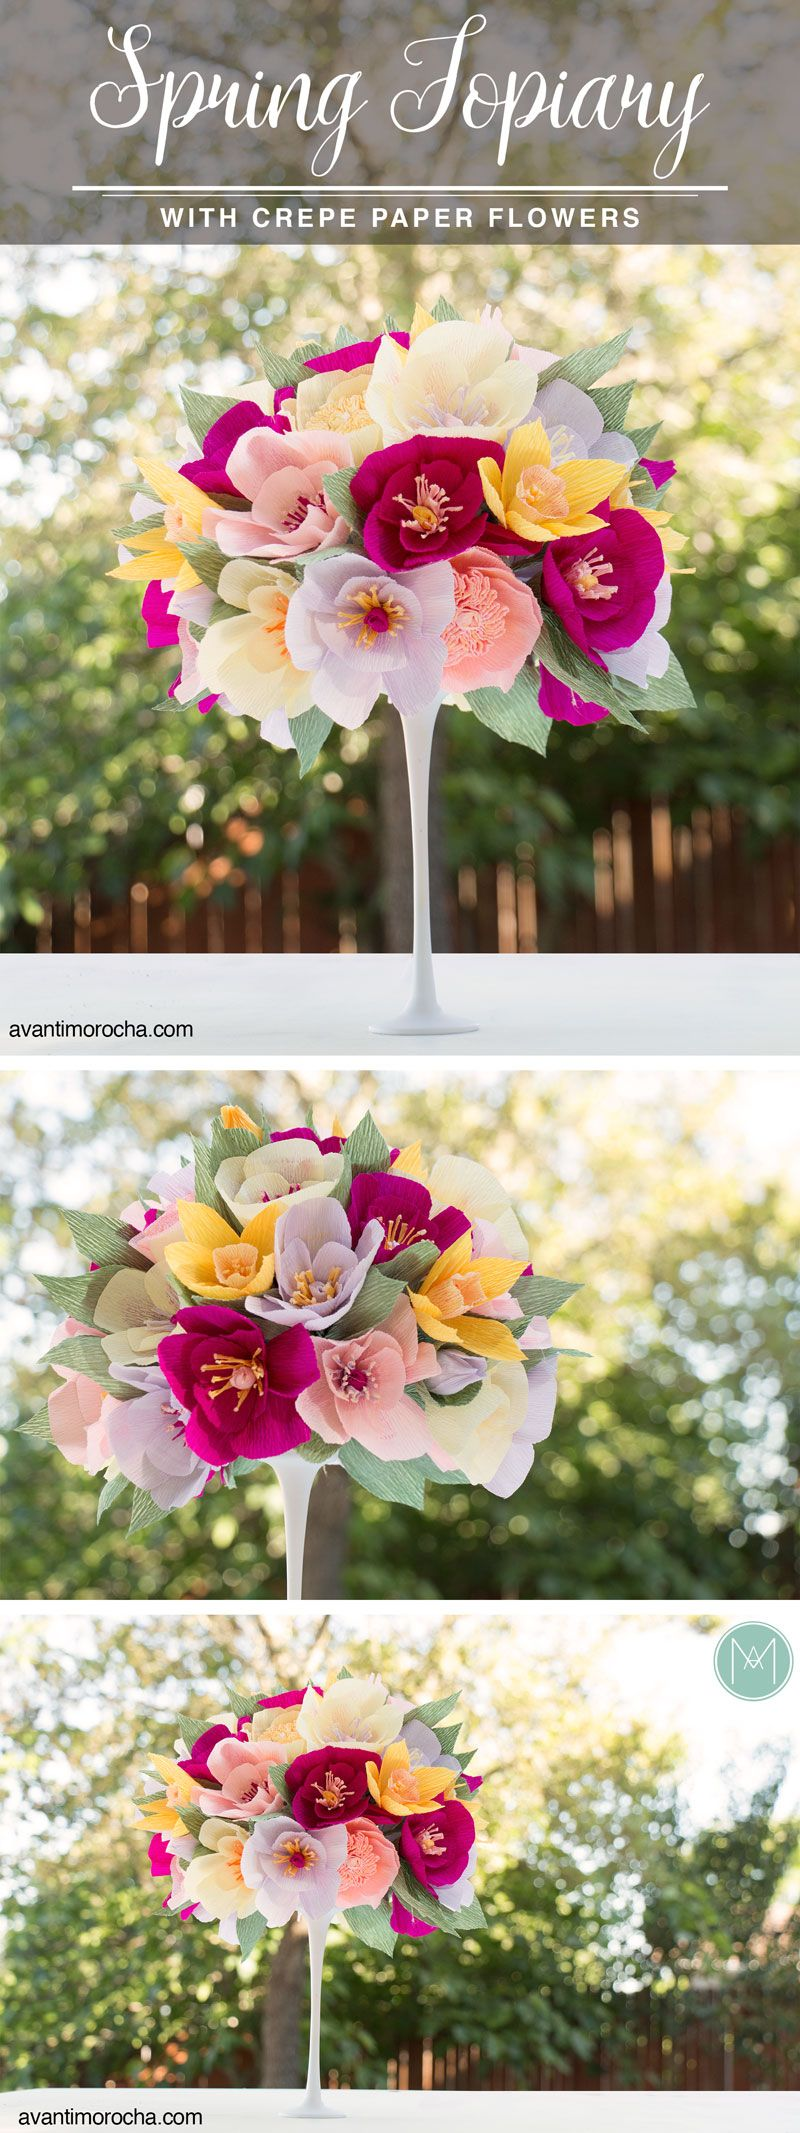 Wedding decorations using crepe paper  DIY Spring Topiary with crepe paper flowers  Topario con flores de